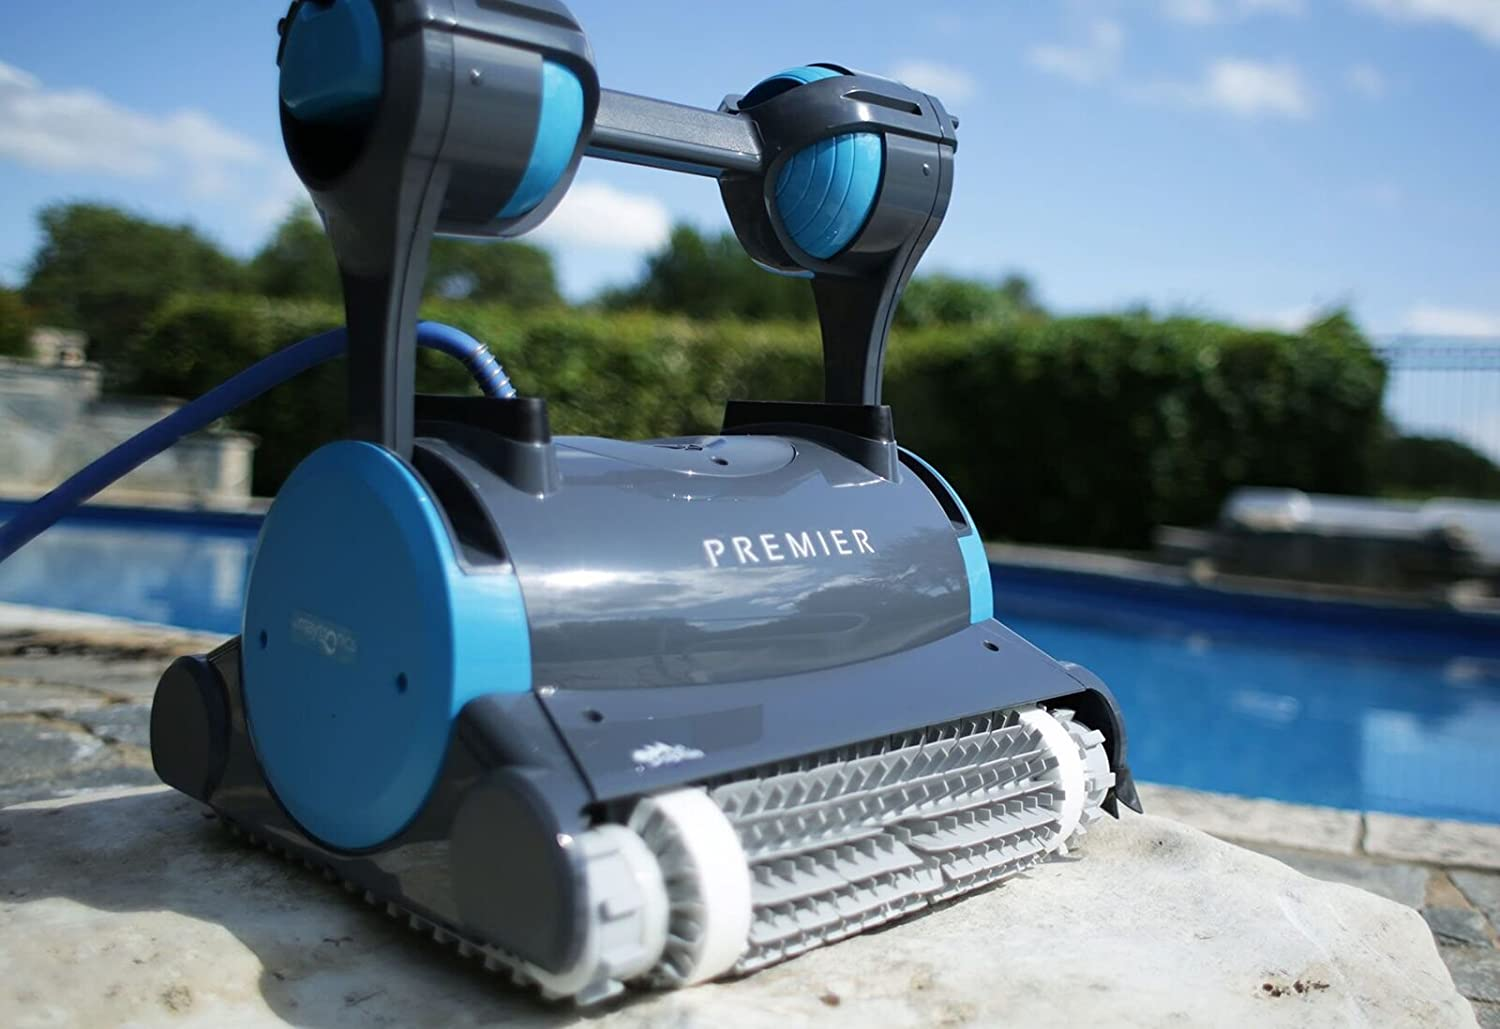 Dolphin Premier Robotic In-Ground Pool Cleaner Reviews